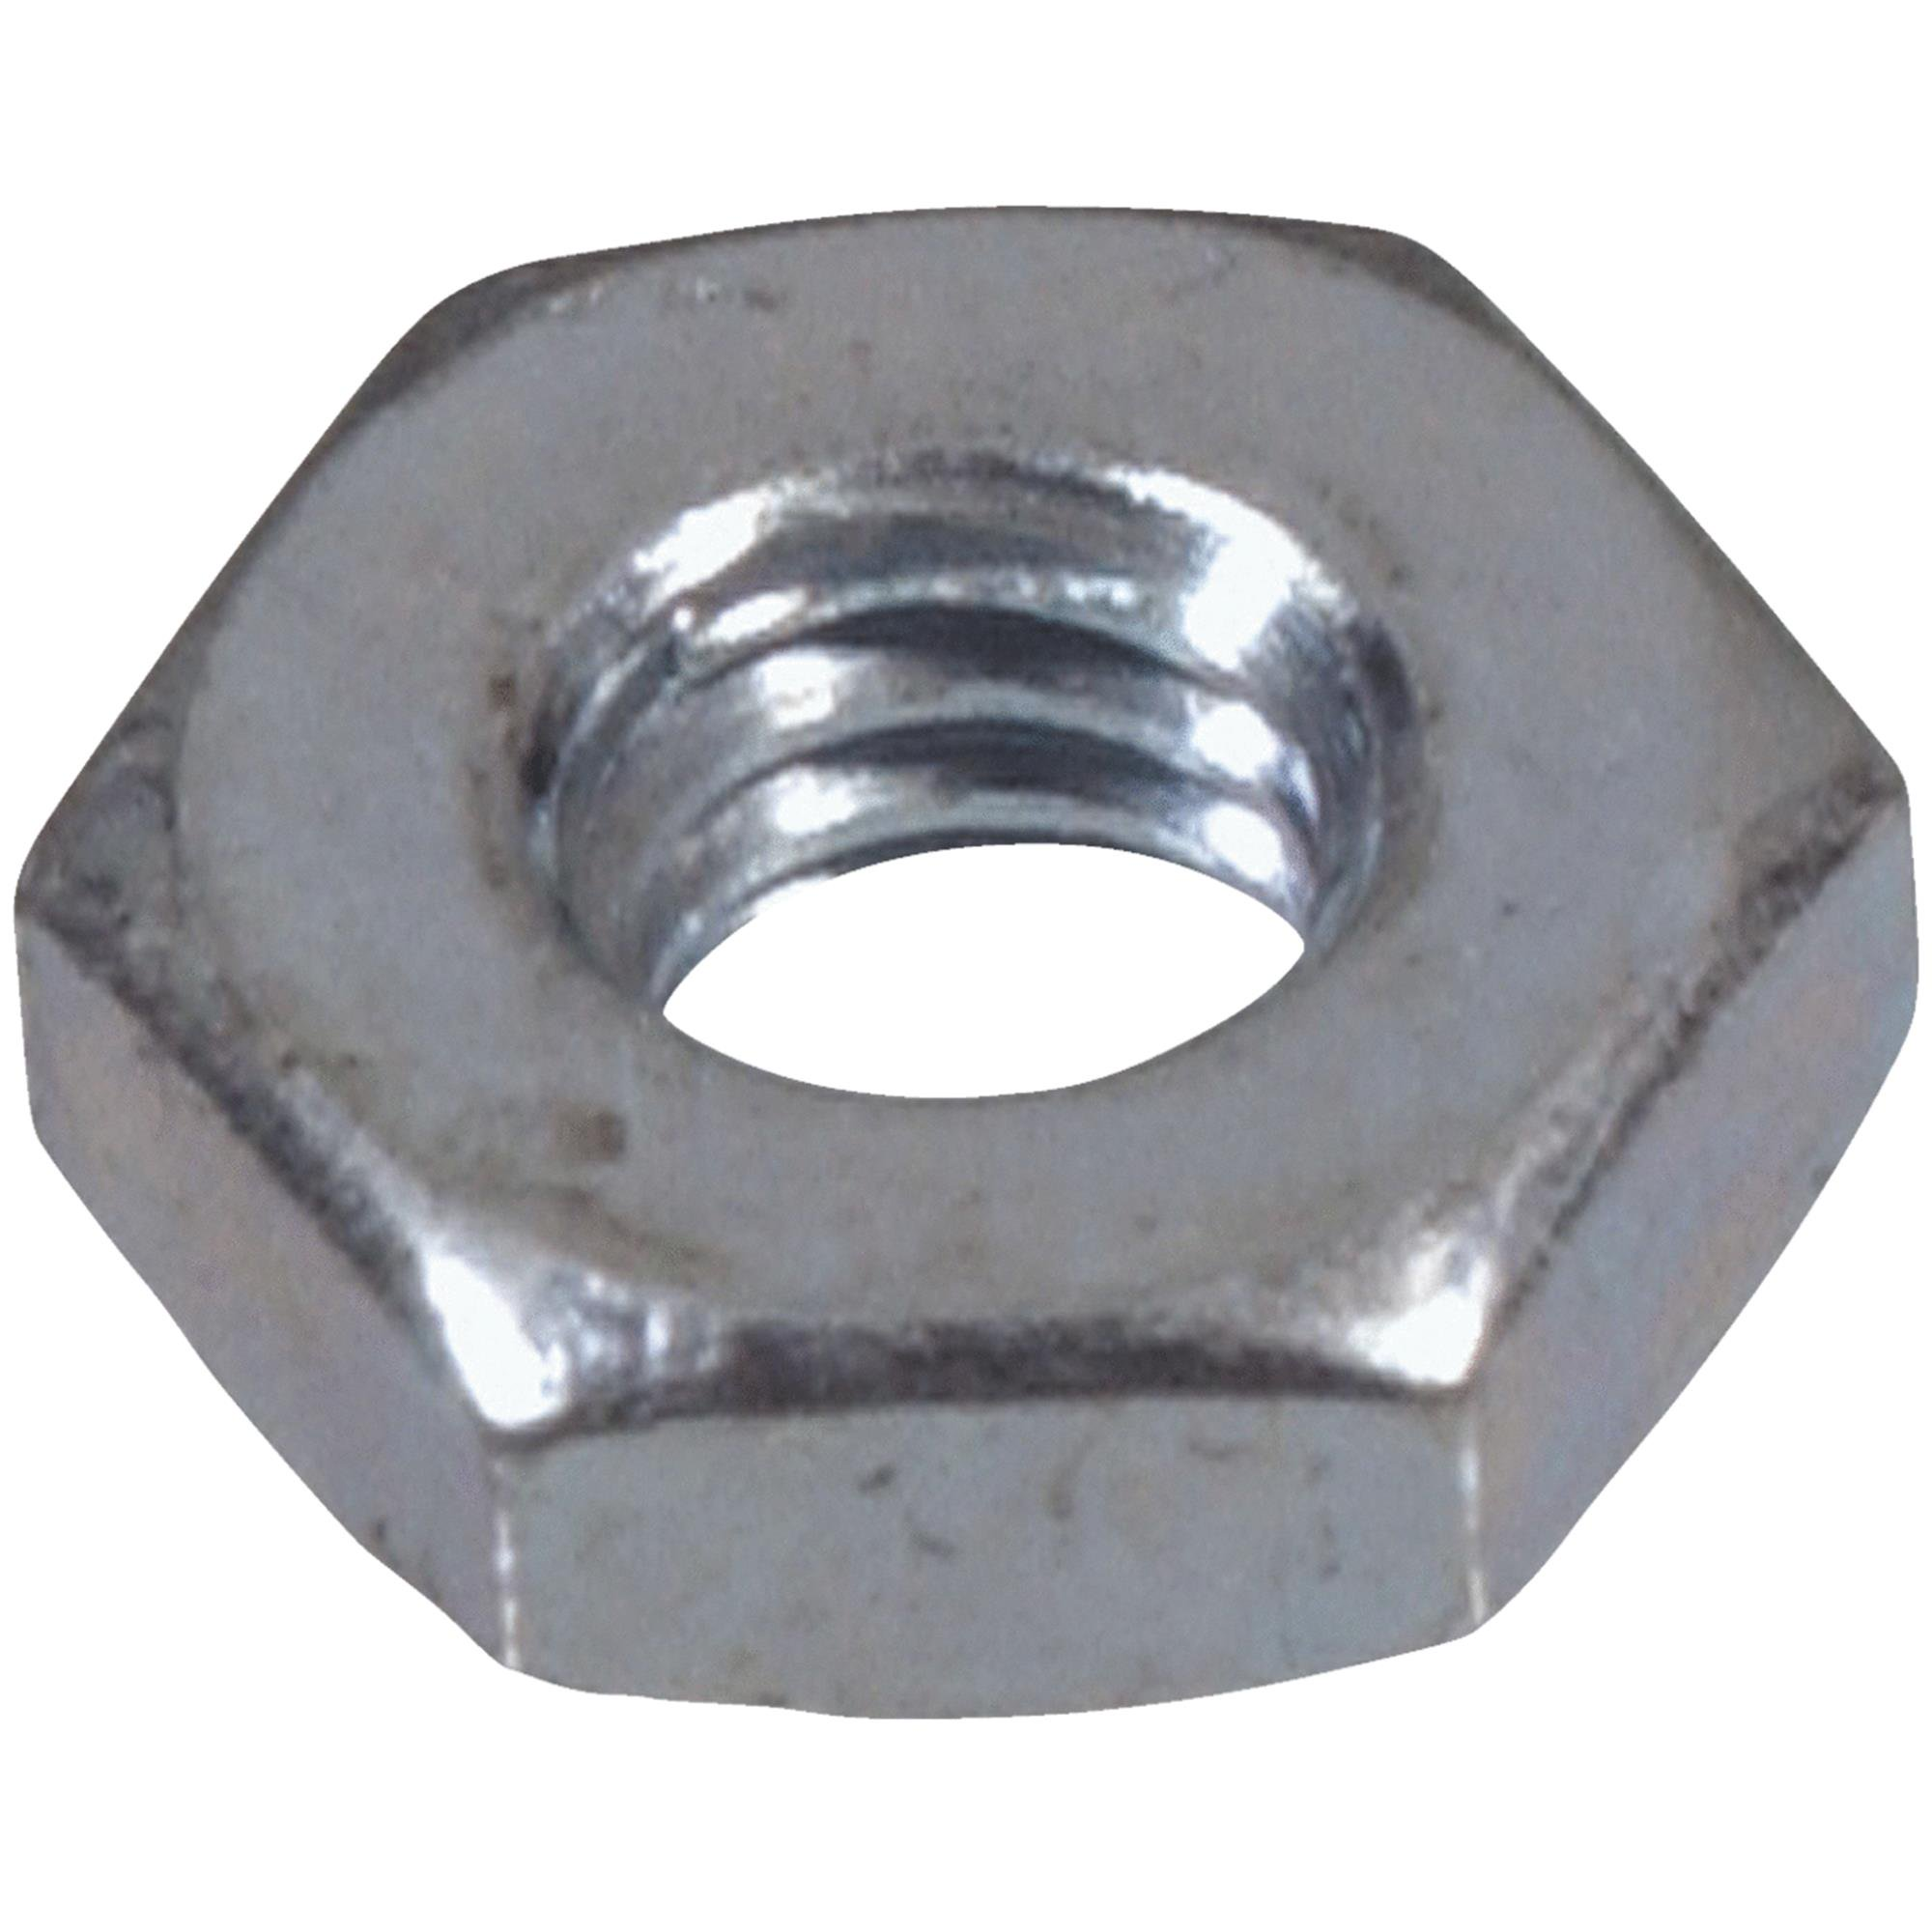 Hillman Fastener Corp 6-32 Hex Mach Screw Nut 140015